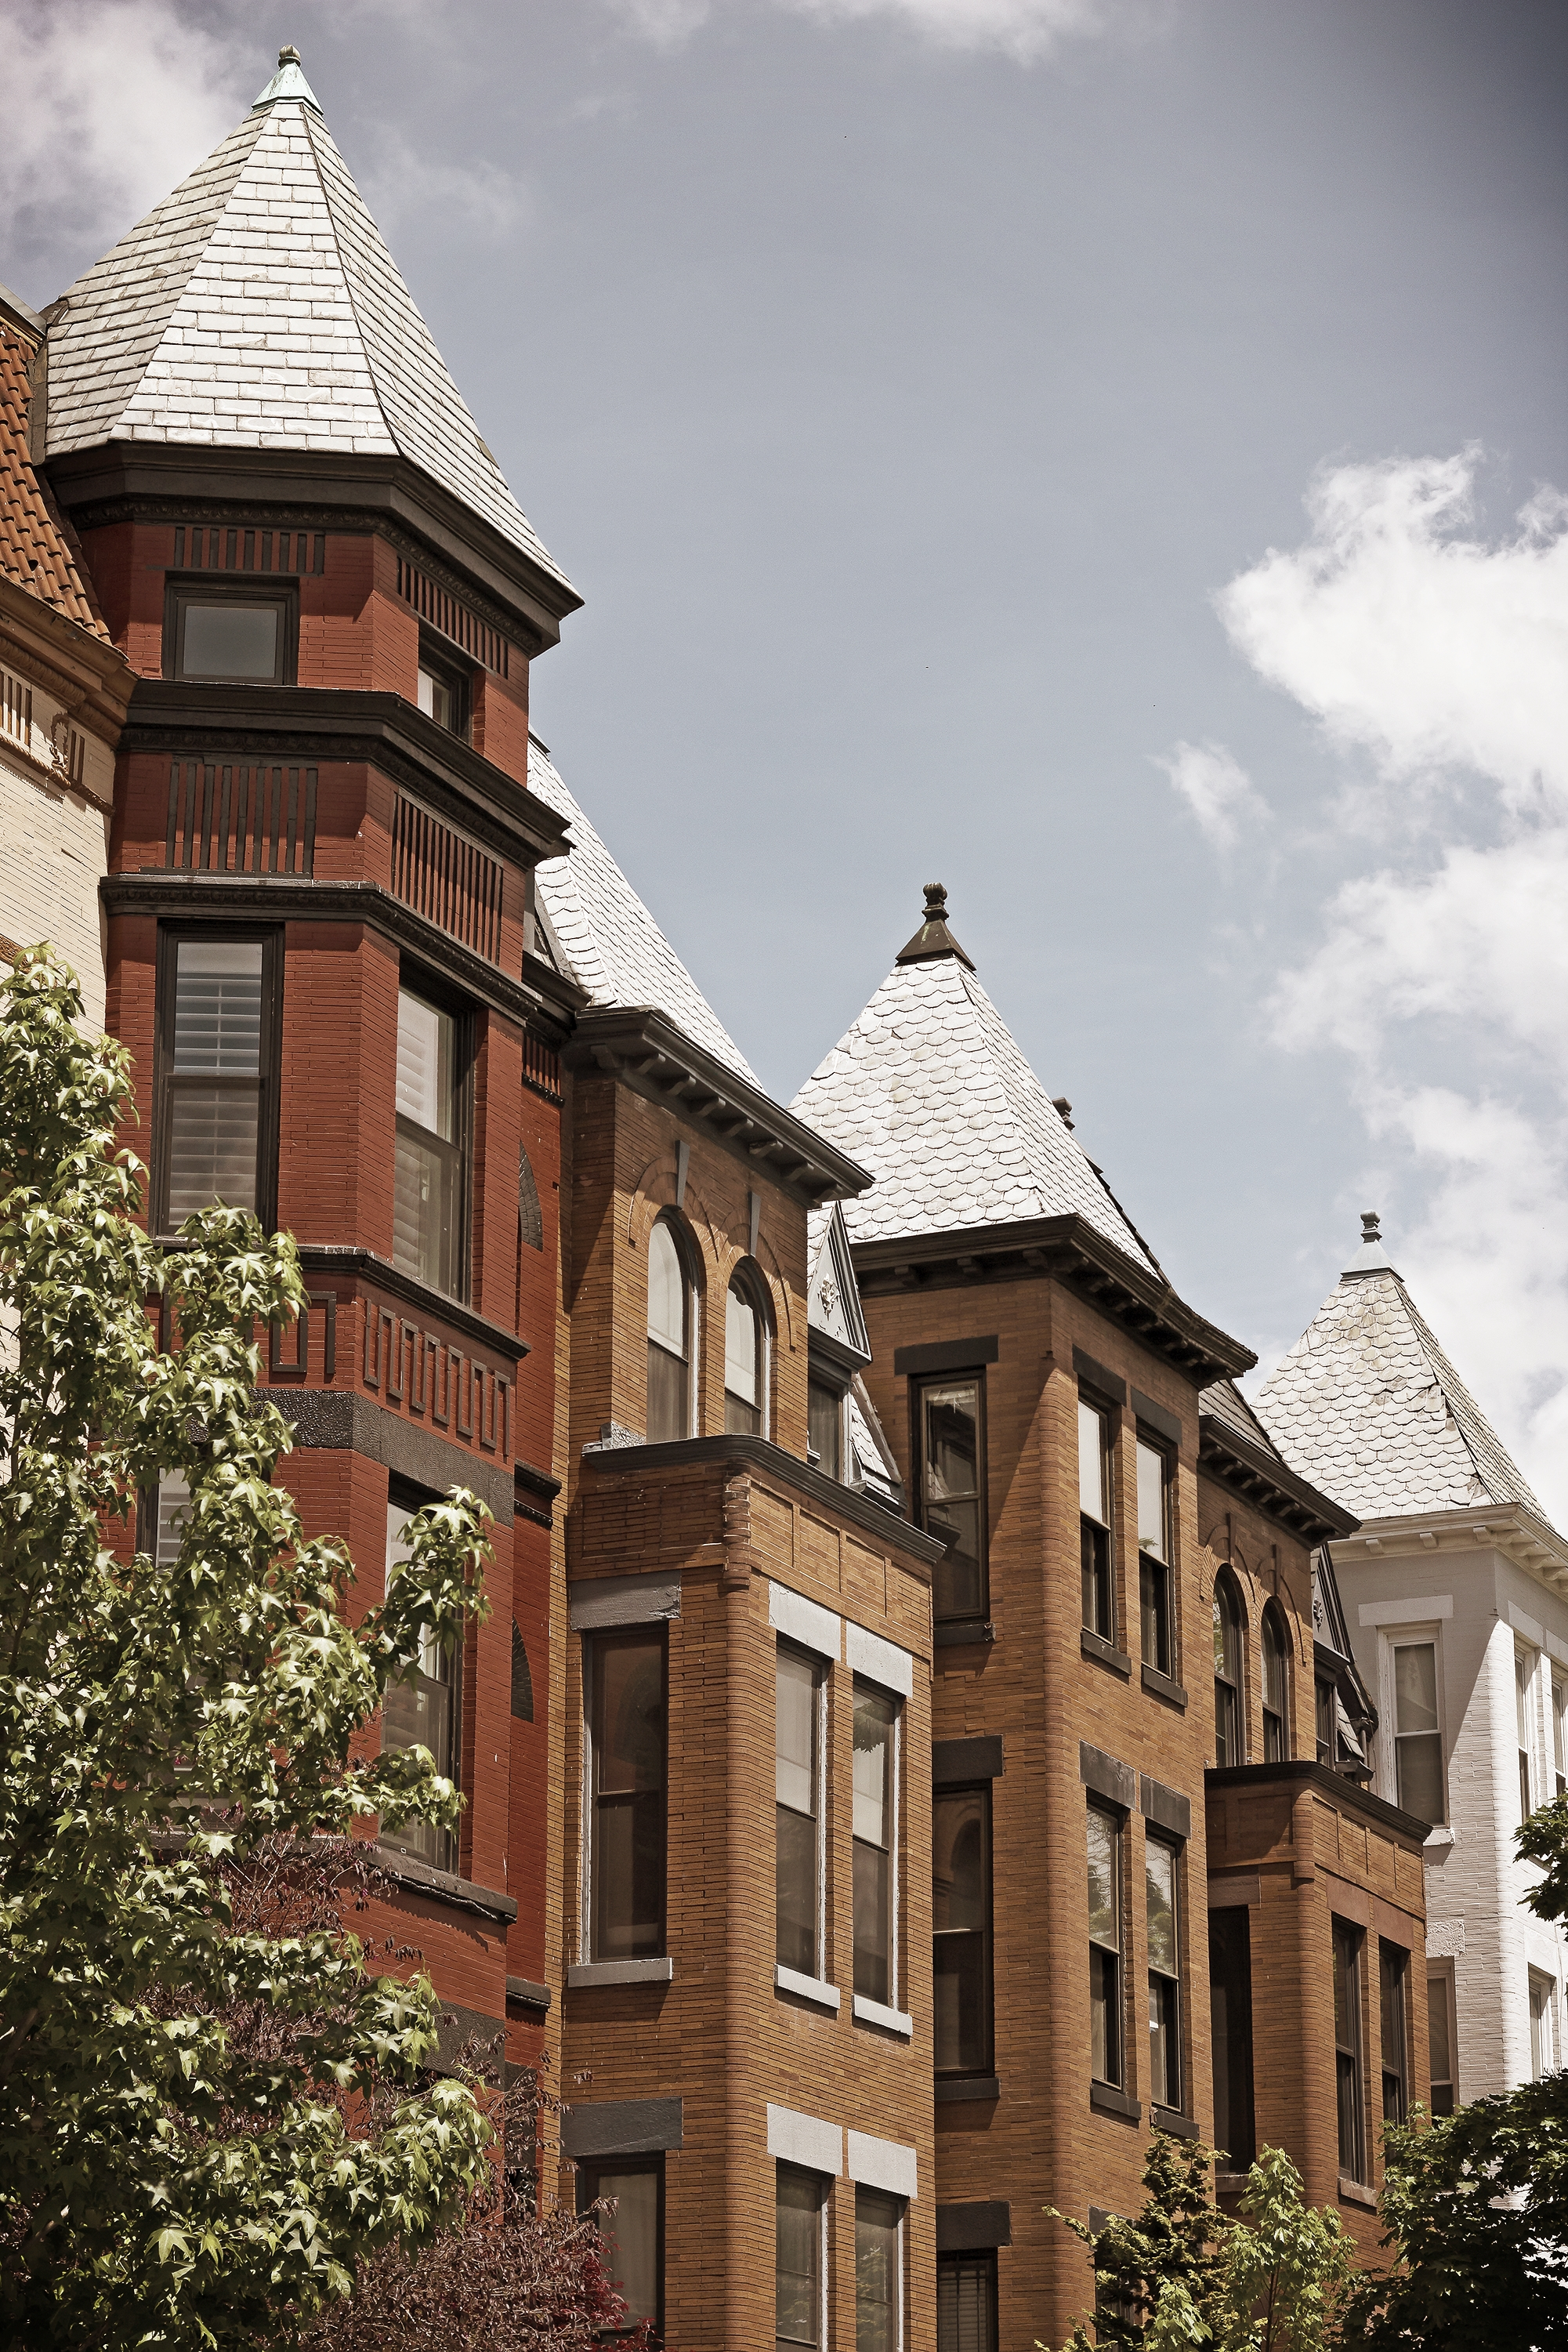 Row house facades